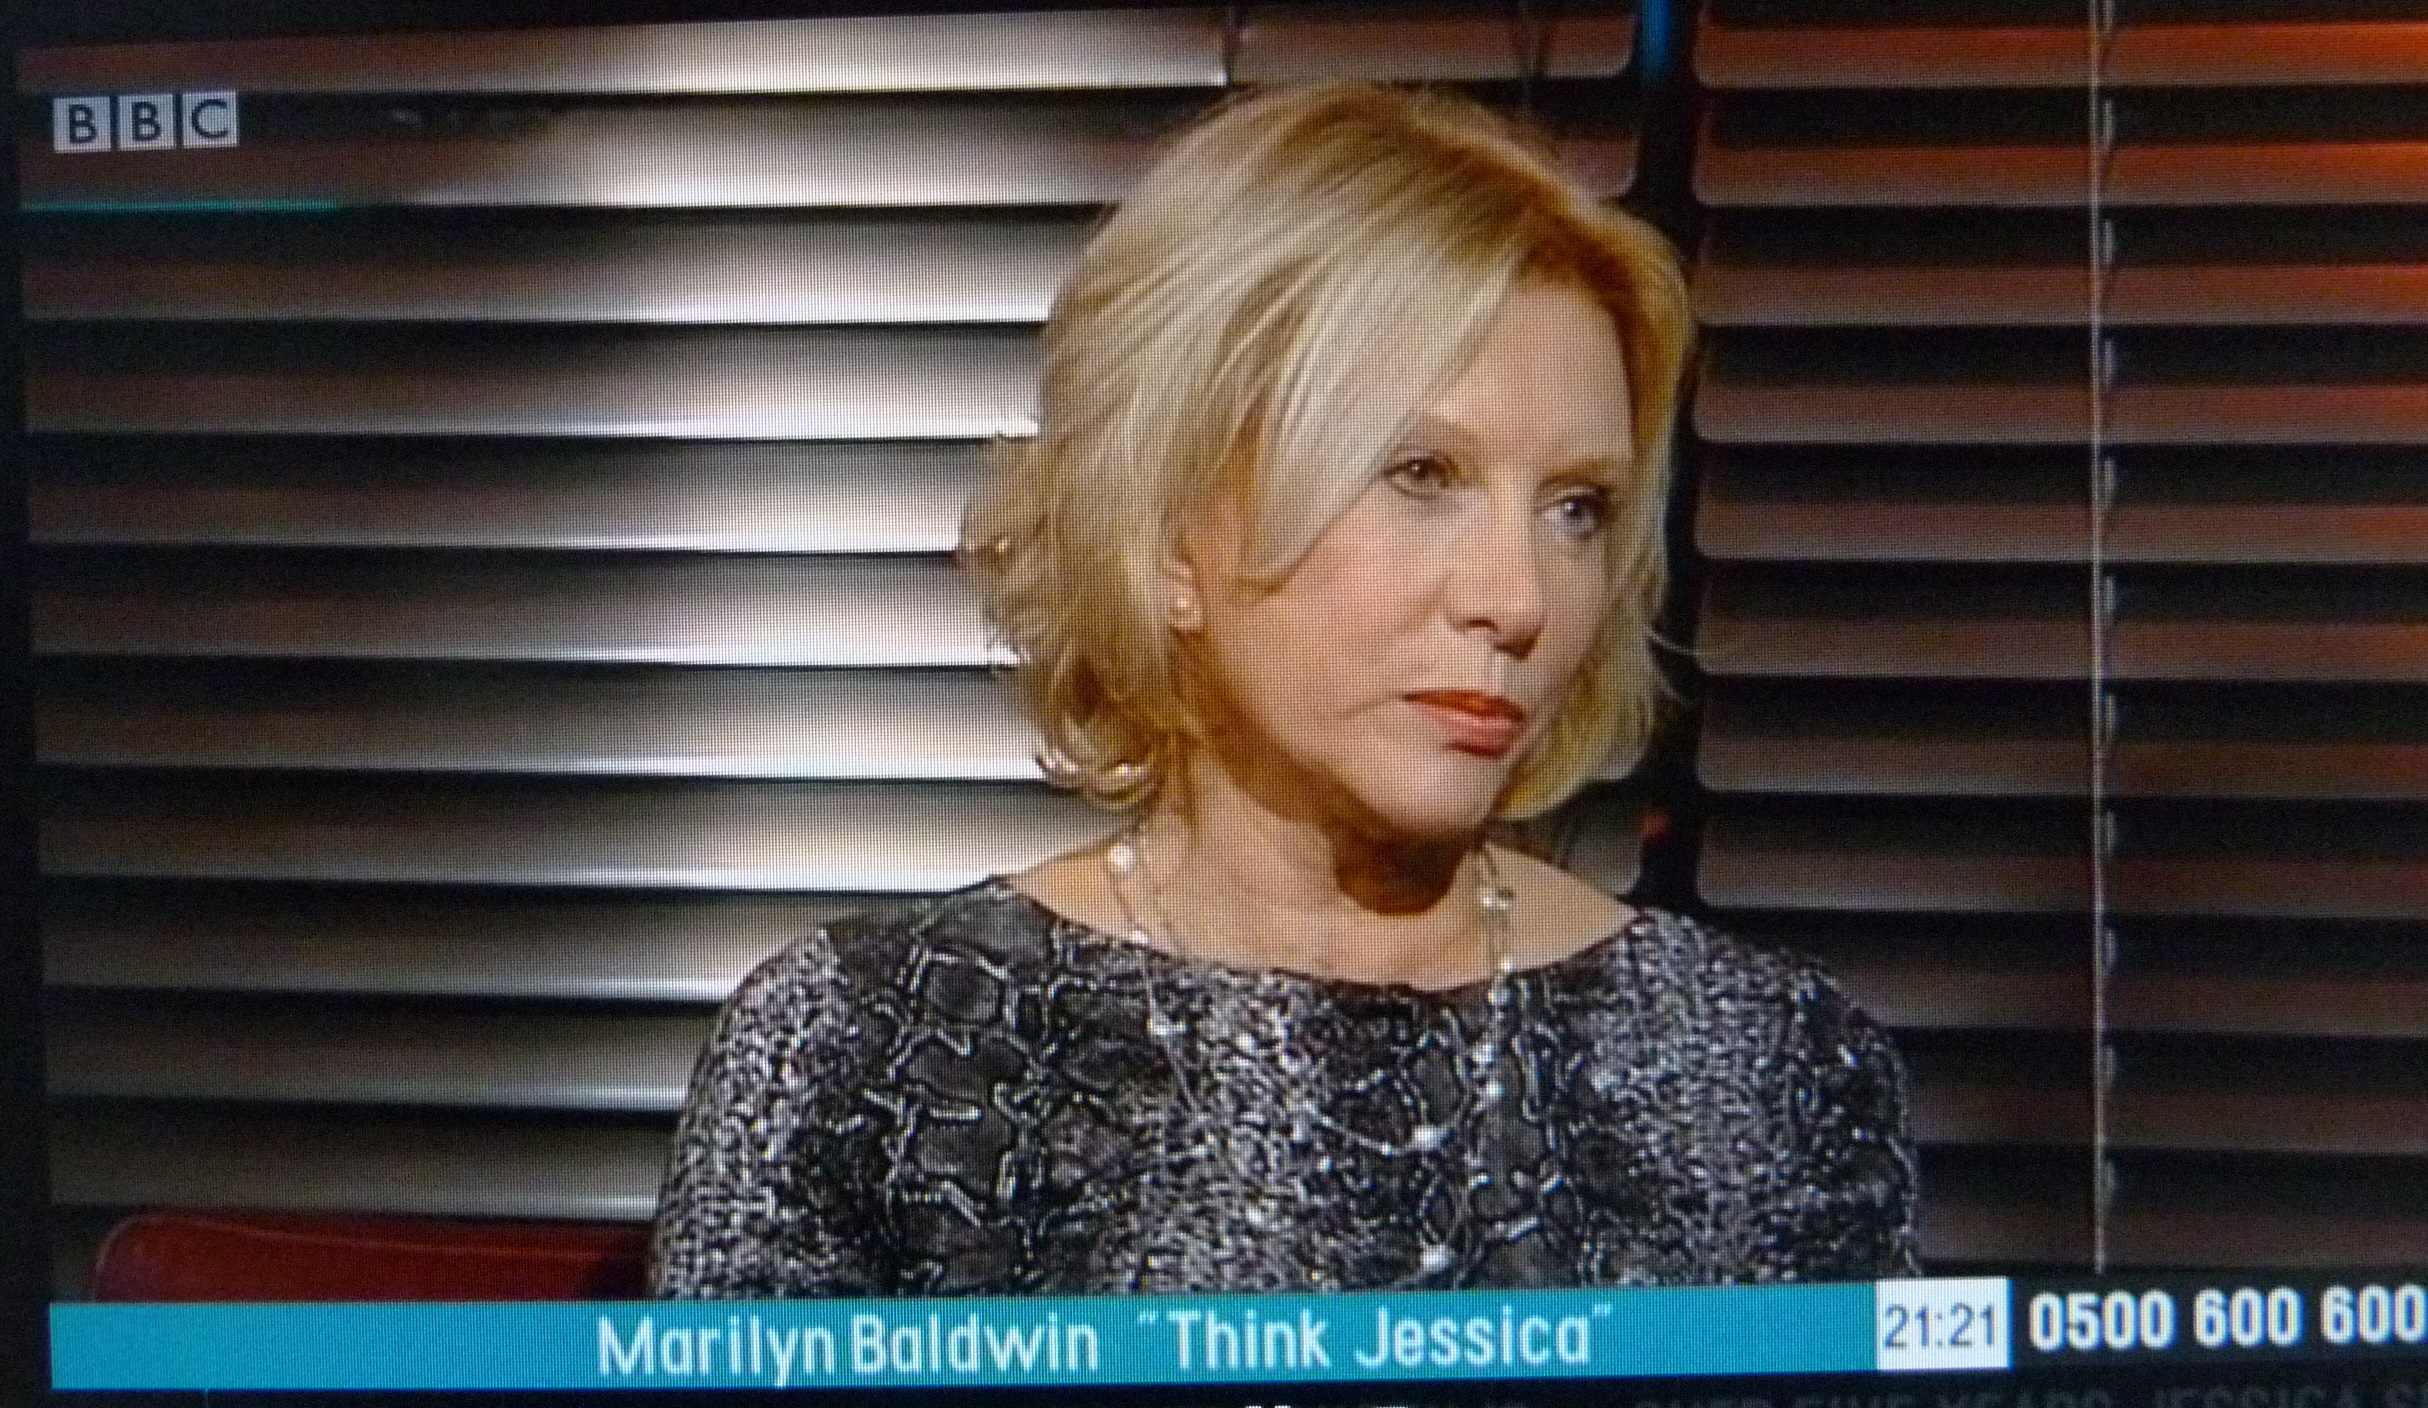 Marilyn Baldwin, founder of Think Jessica, working with Home Instead Senior Care to raise awareness of senior fraud issues